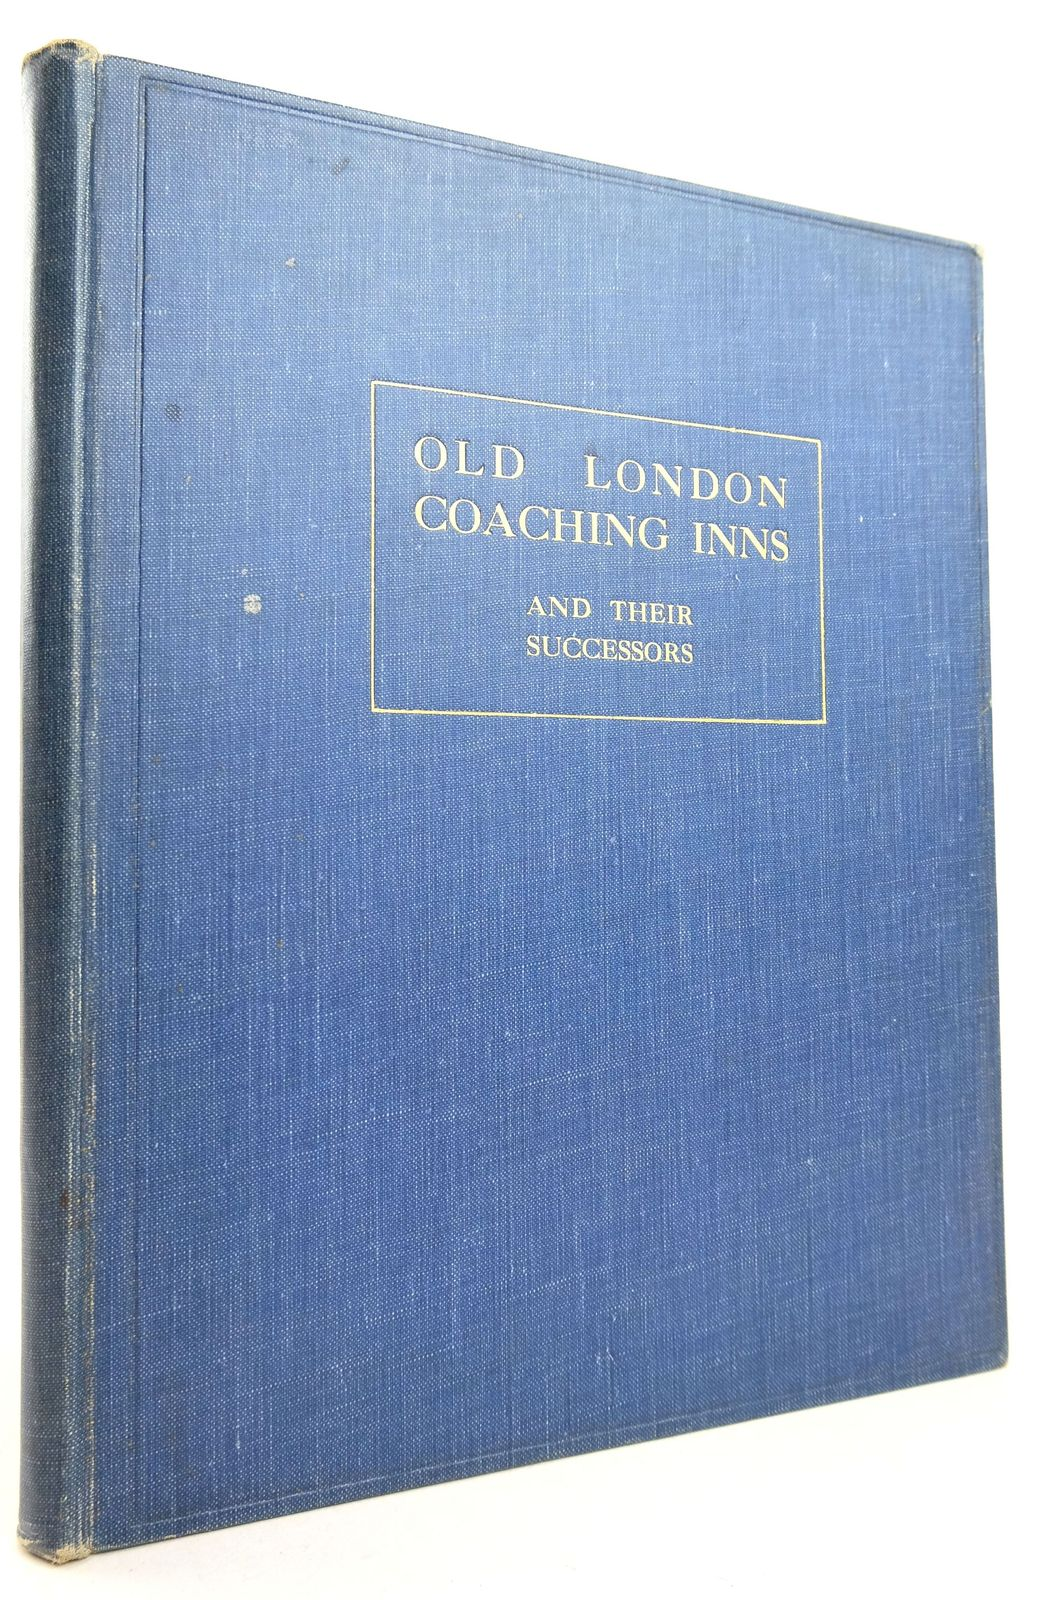 Photo of OLD LONDON COACHING INNS AND THEIR SUCCESSORS- Stock Number: 1819577